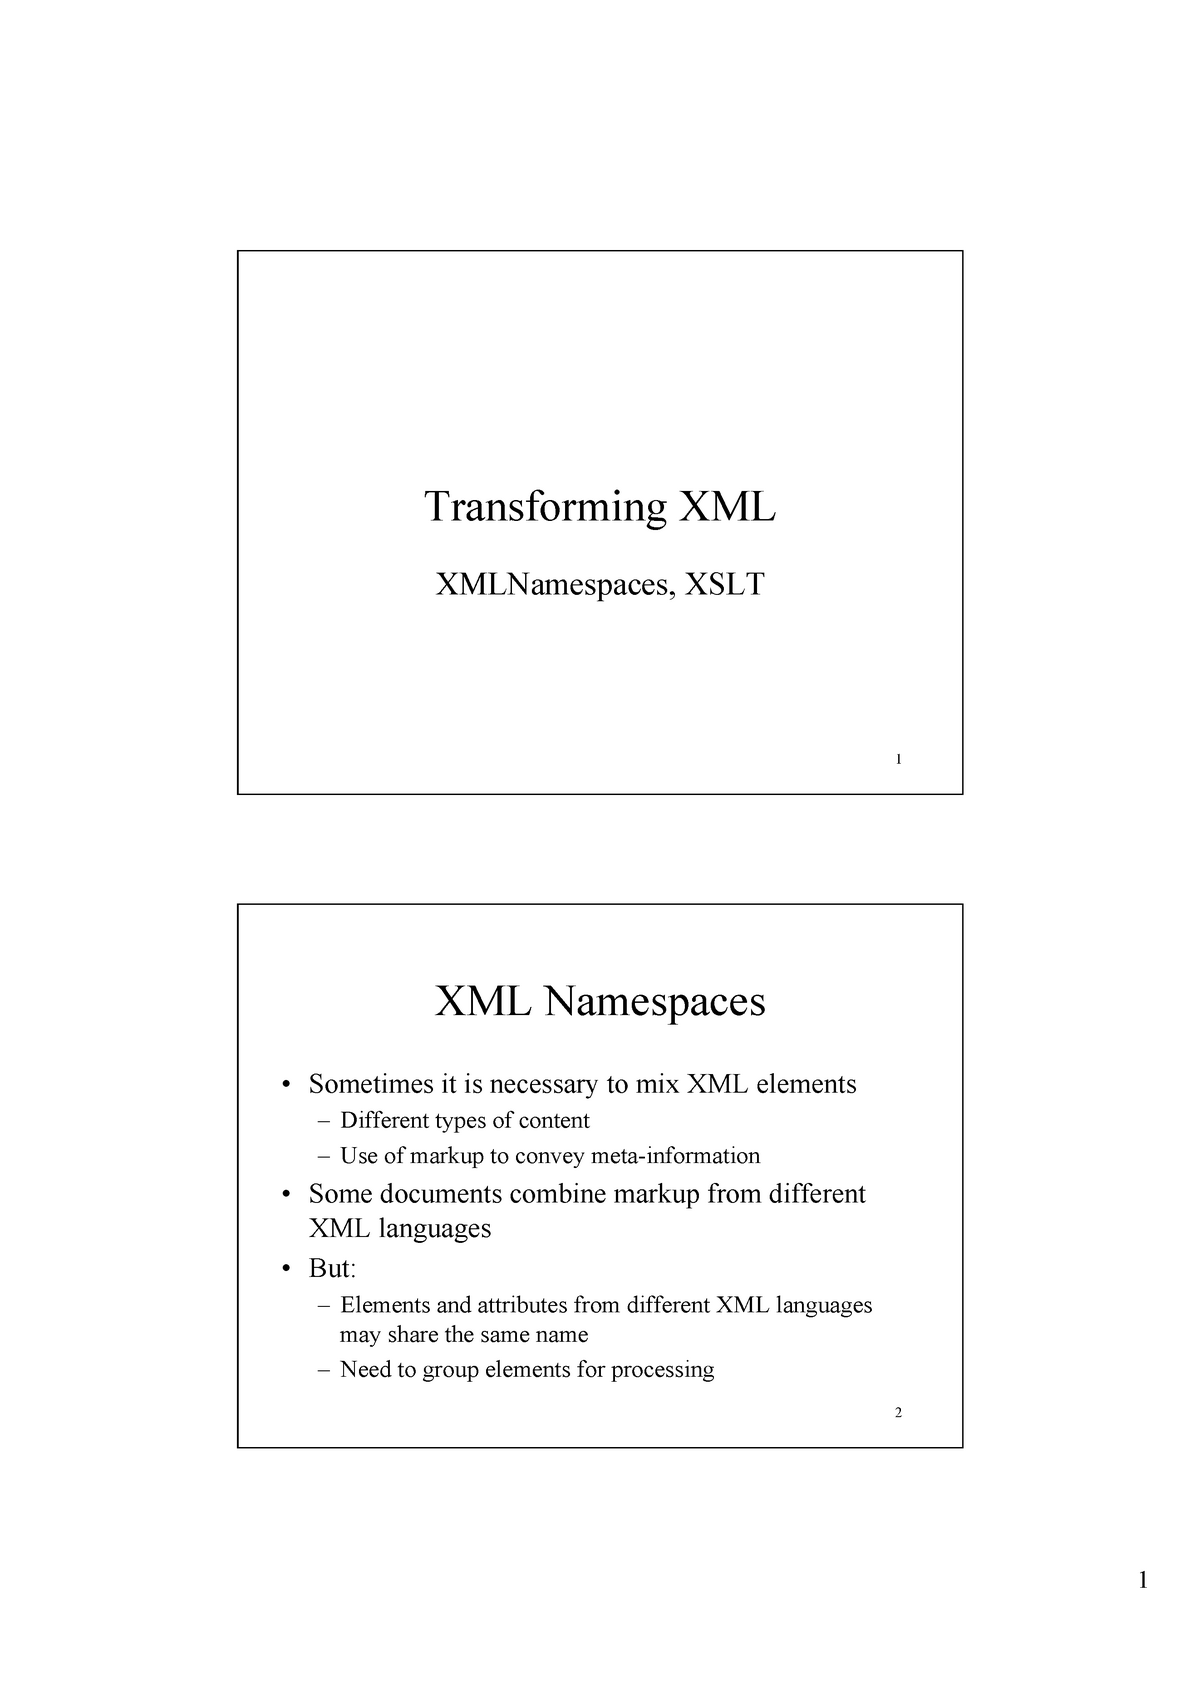 XML and Java XSLT - Lecture slides - 6G7Z1006: Enterprise